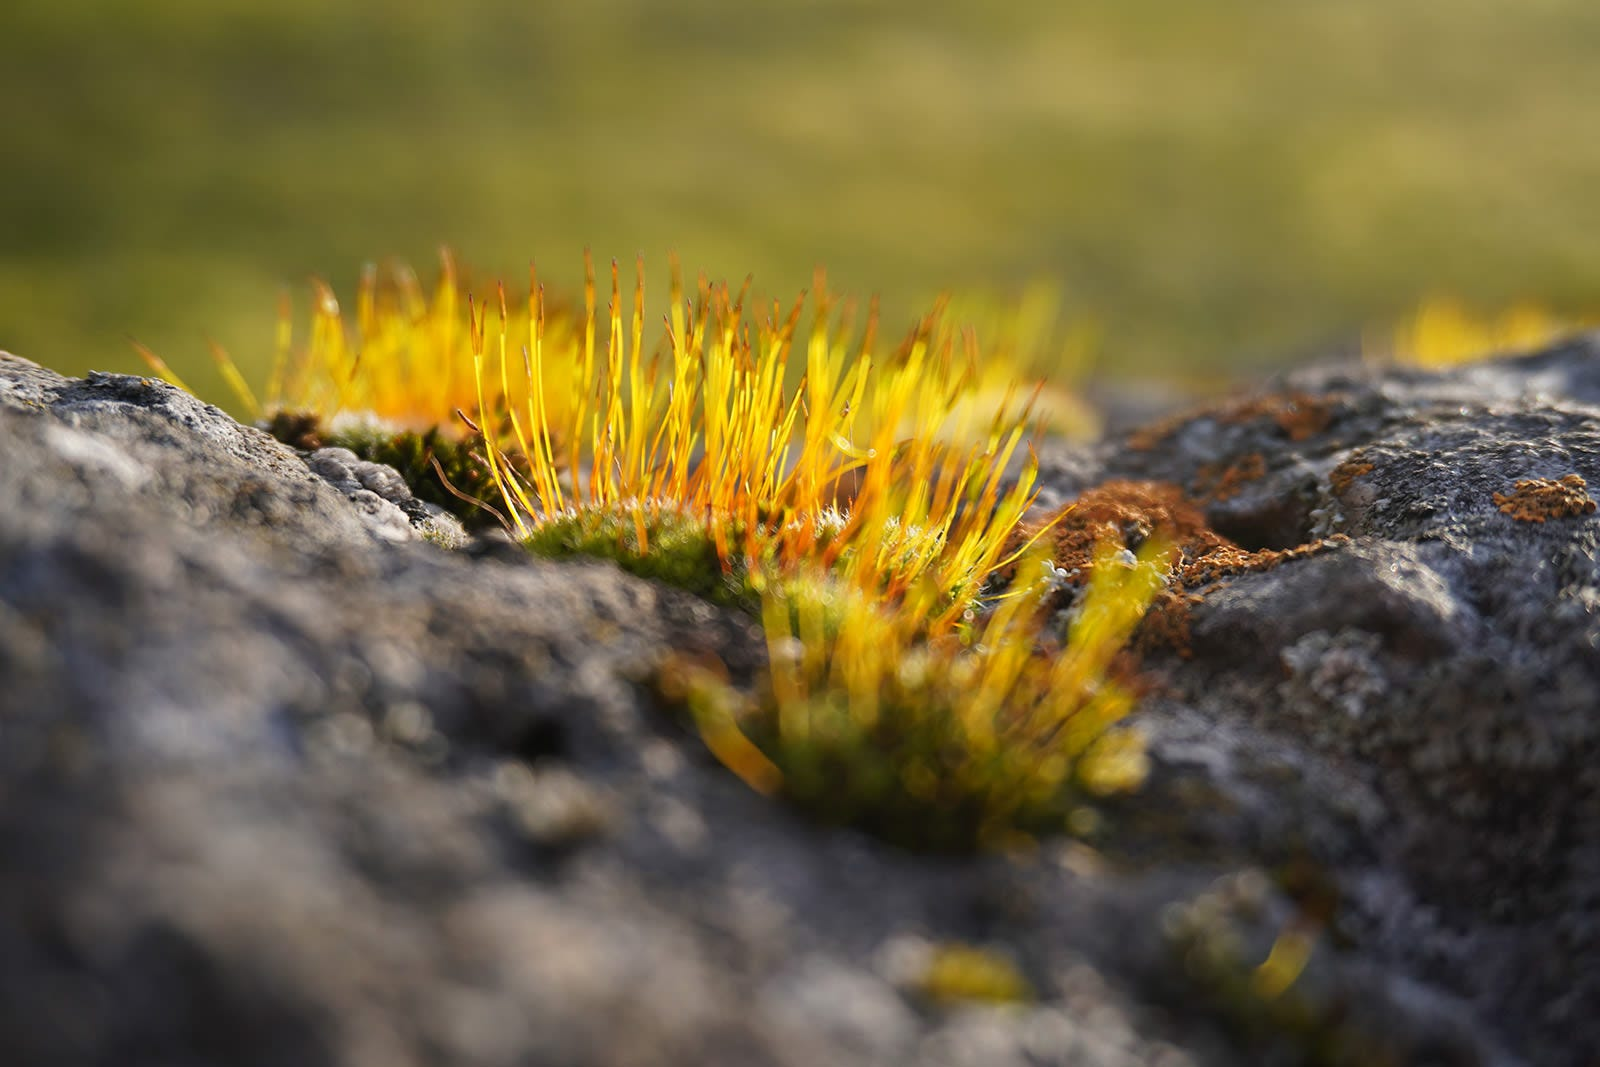 The hairs on this small patch of moss have been captured with the automatic focus. The good thing about the 6100's AF is that it lets you quickly shift focus from one group of hairs to another in just a few seconds. All you have to do is move the frame a bit and focus again. Focusing has stopped being tortured and has turned into a game.